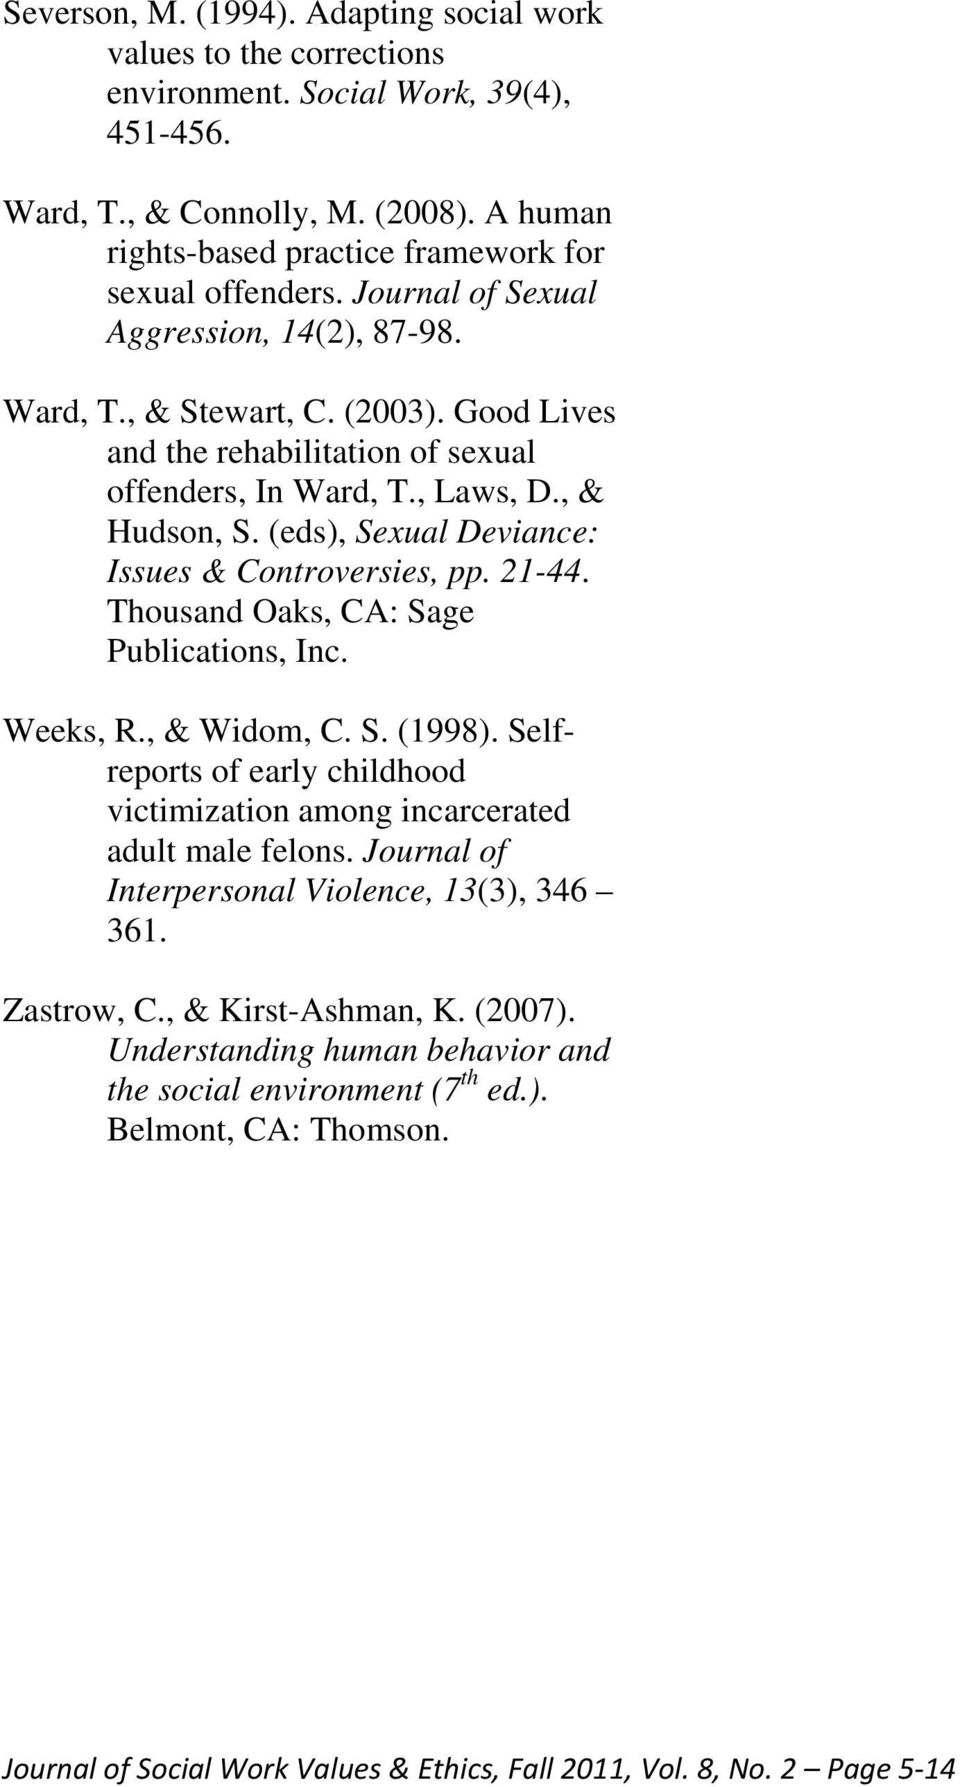 Good Lives and the rehabilitation of sexual offenders, In Ward, T., Laws, D., & Hudson, S. (eds), Sexual Deviance: Issues & Controversies, pp. 21-44. Thousand Oaks, CA: Sage Publications, Inc.